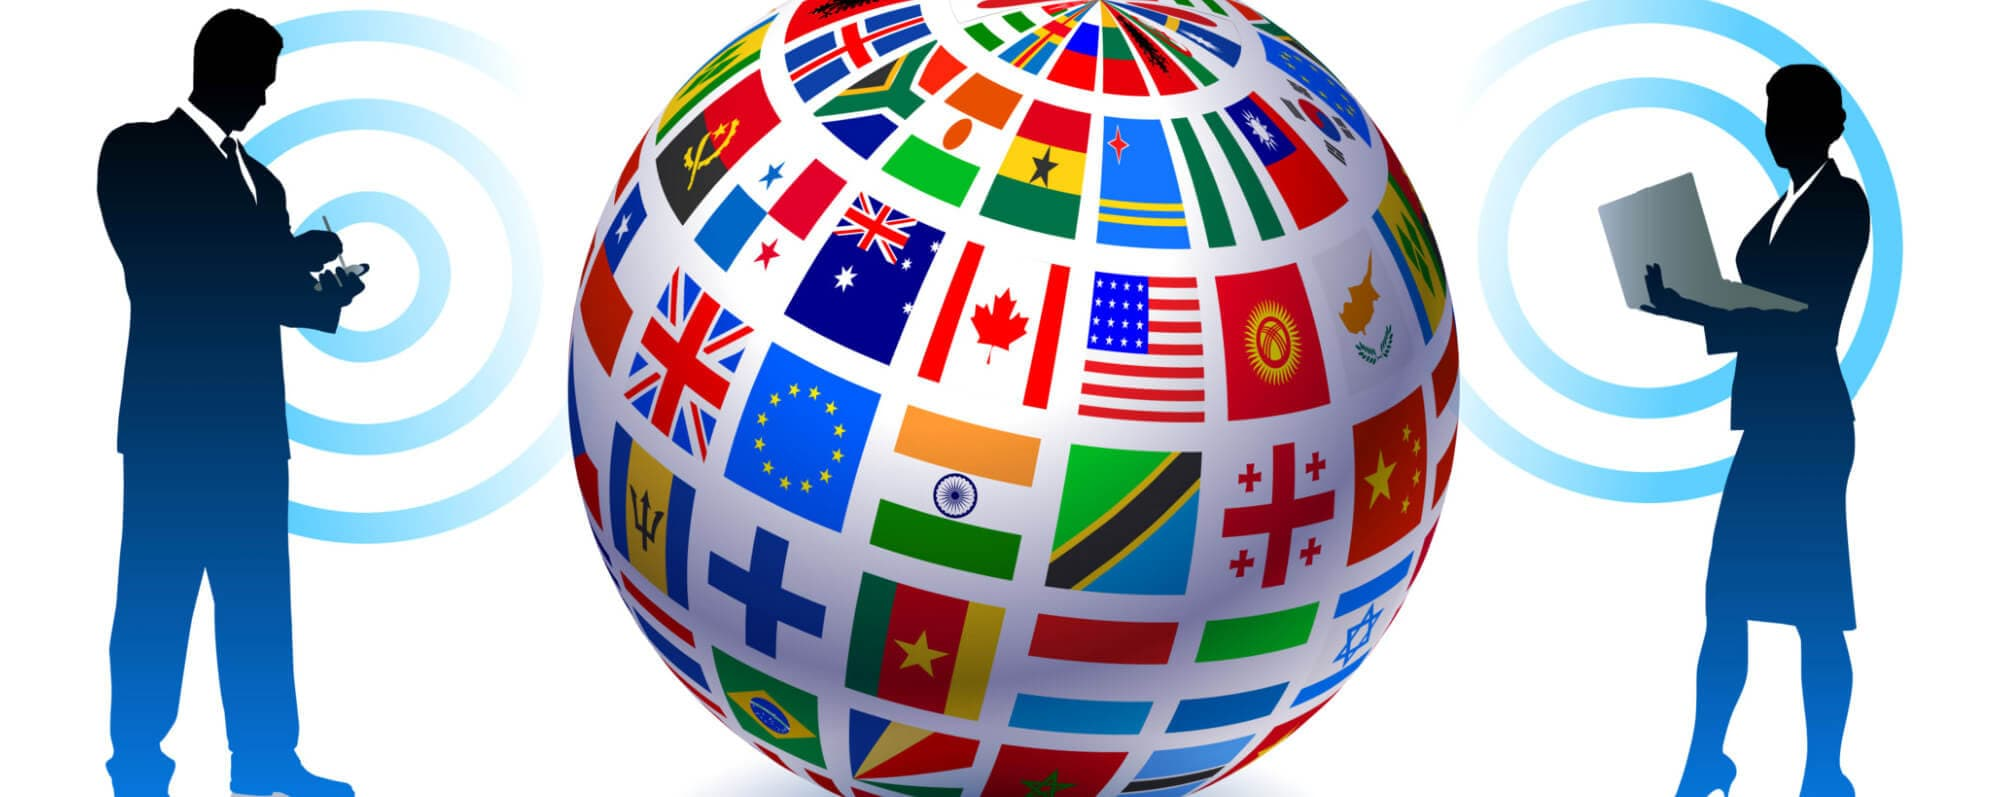 vector image of a globe surrounded by country flags